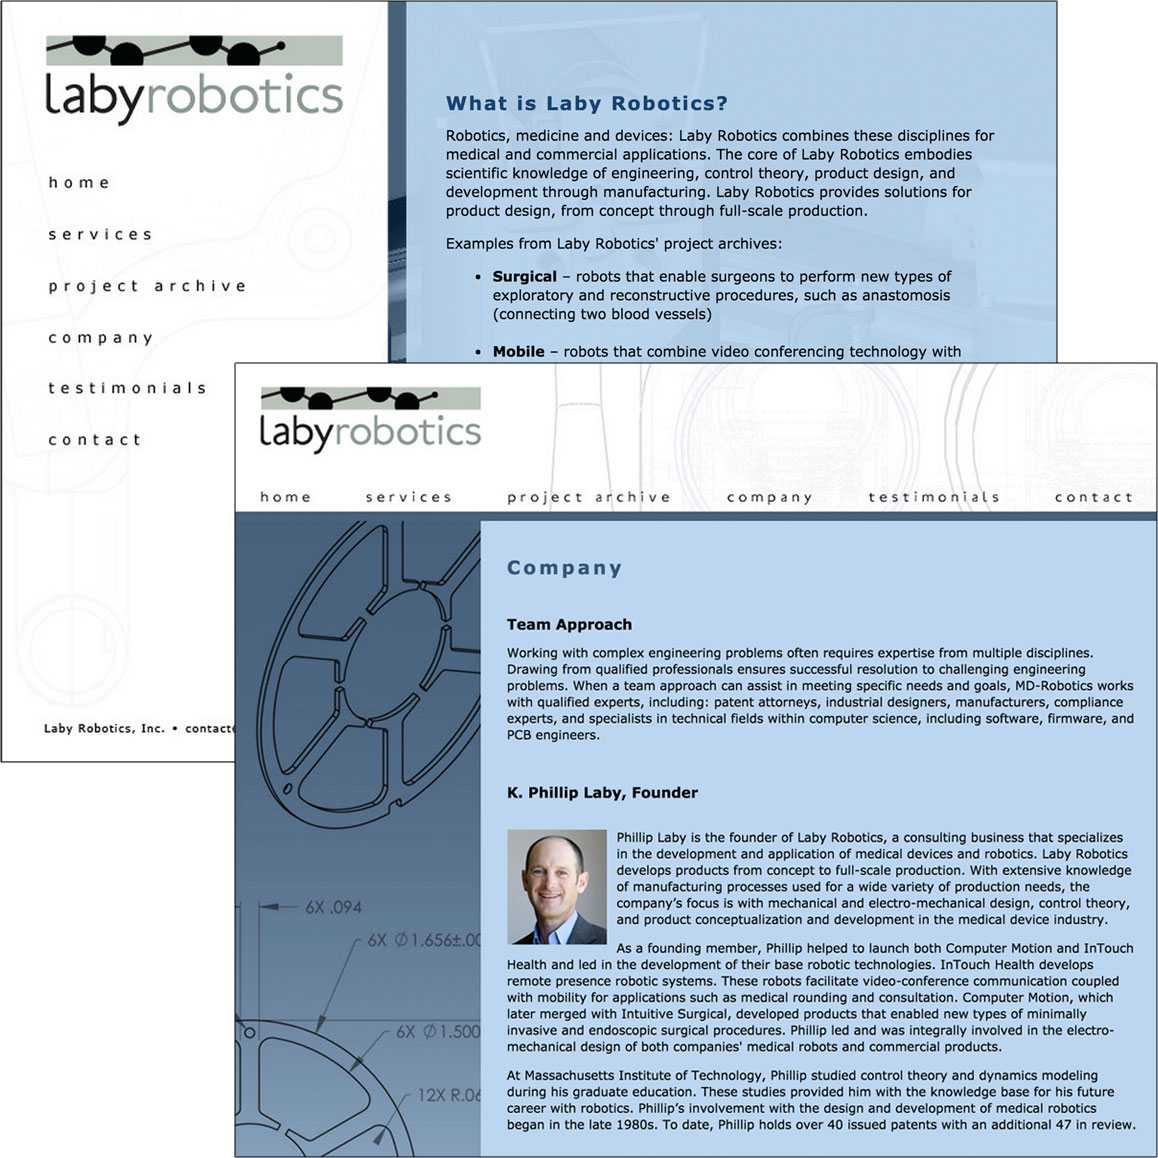 Laby Robotics, Inc. website